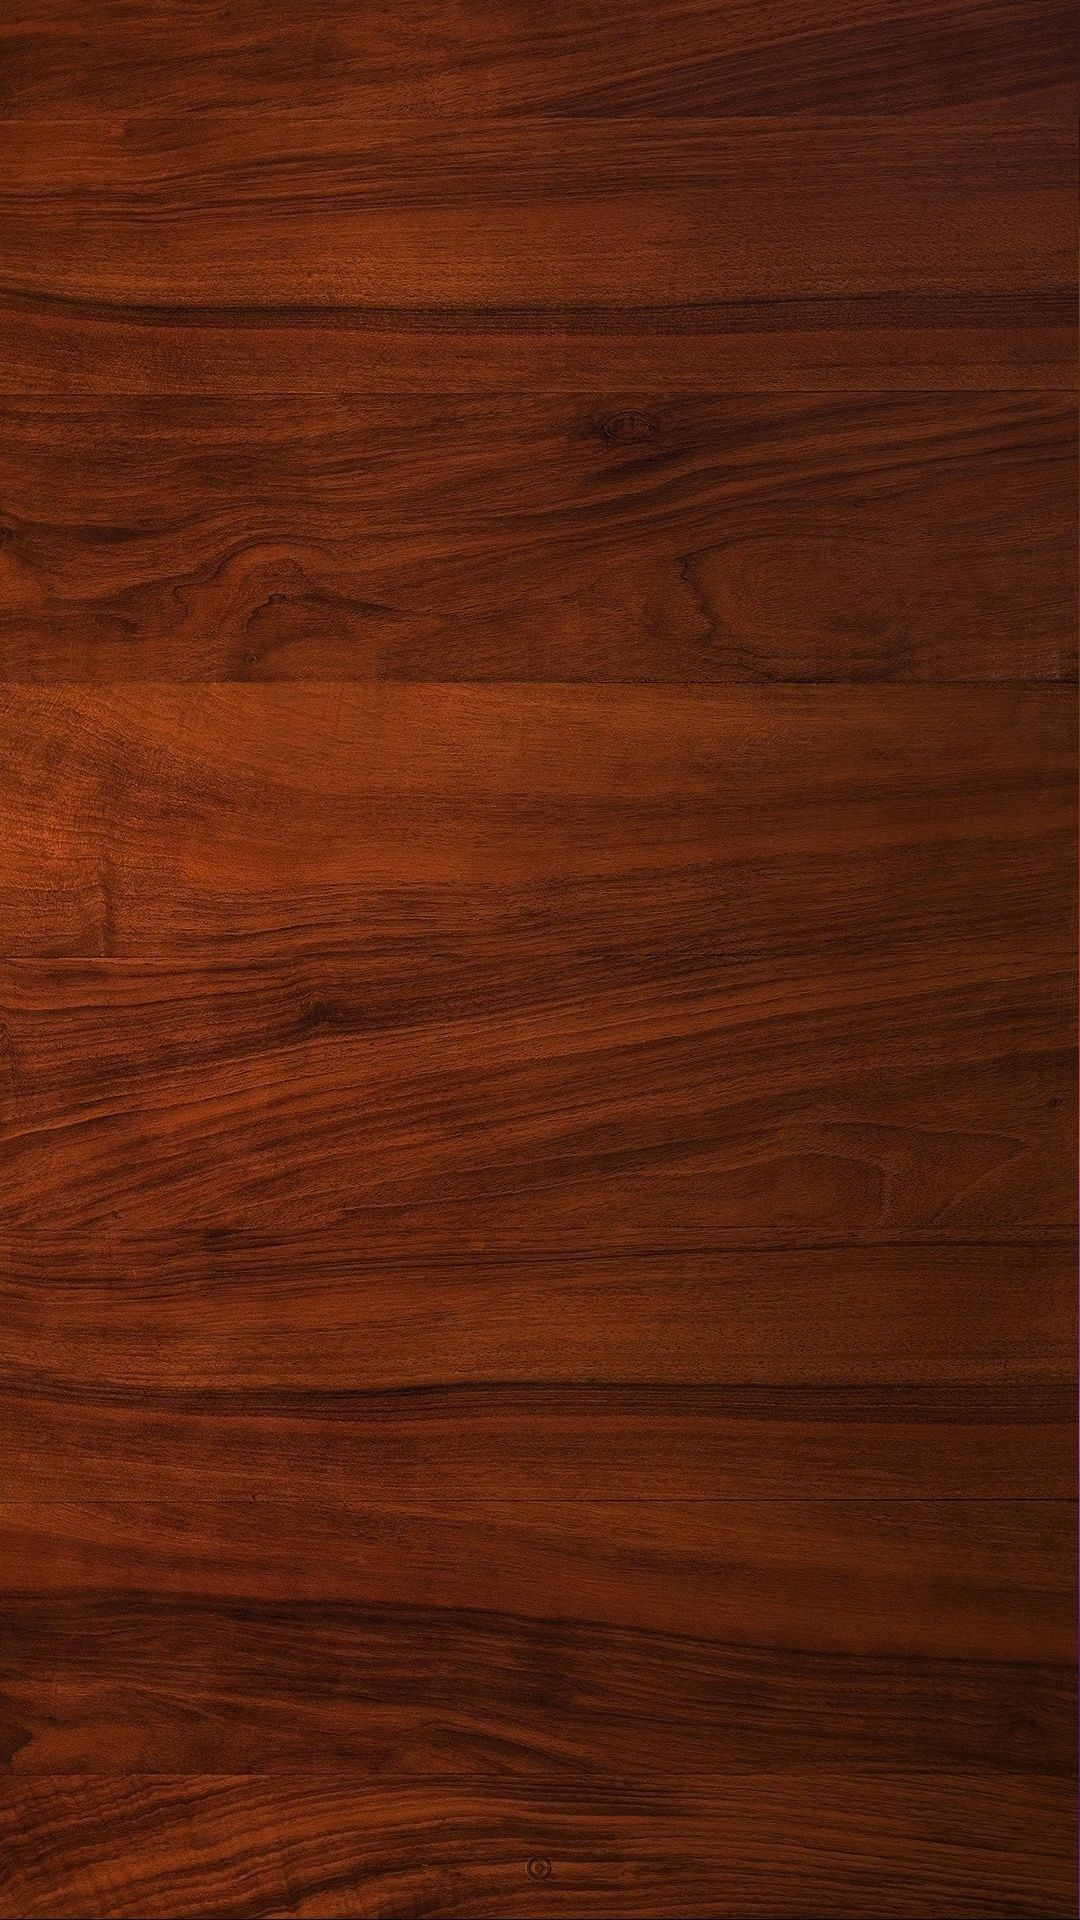 Res: 1080x1920, Cherry Wood Pattern Texture iPhone 6 Plus HD Wallpaper